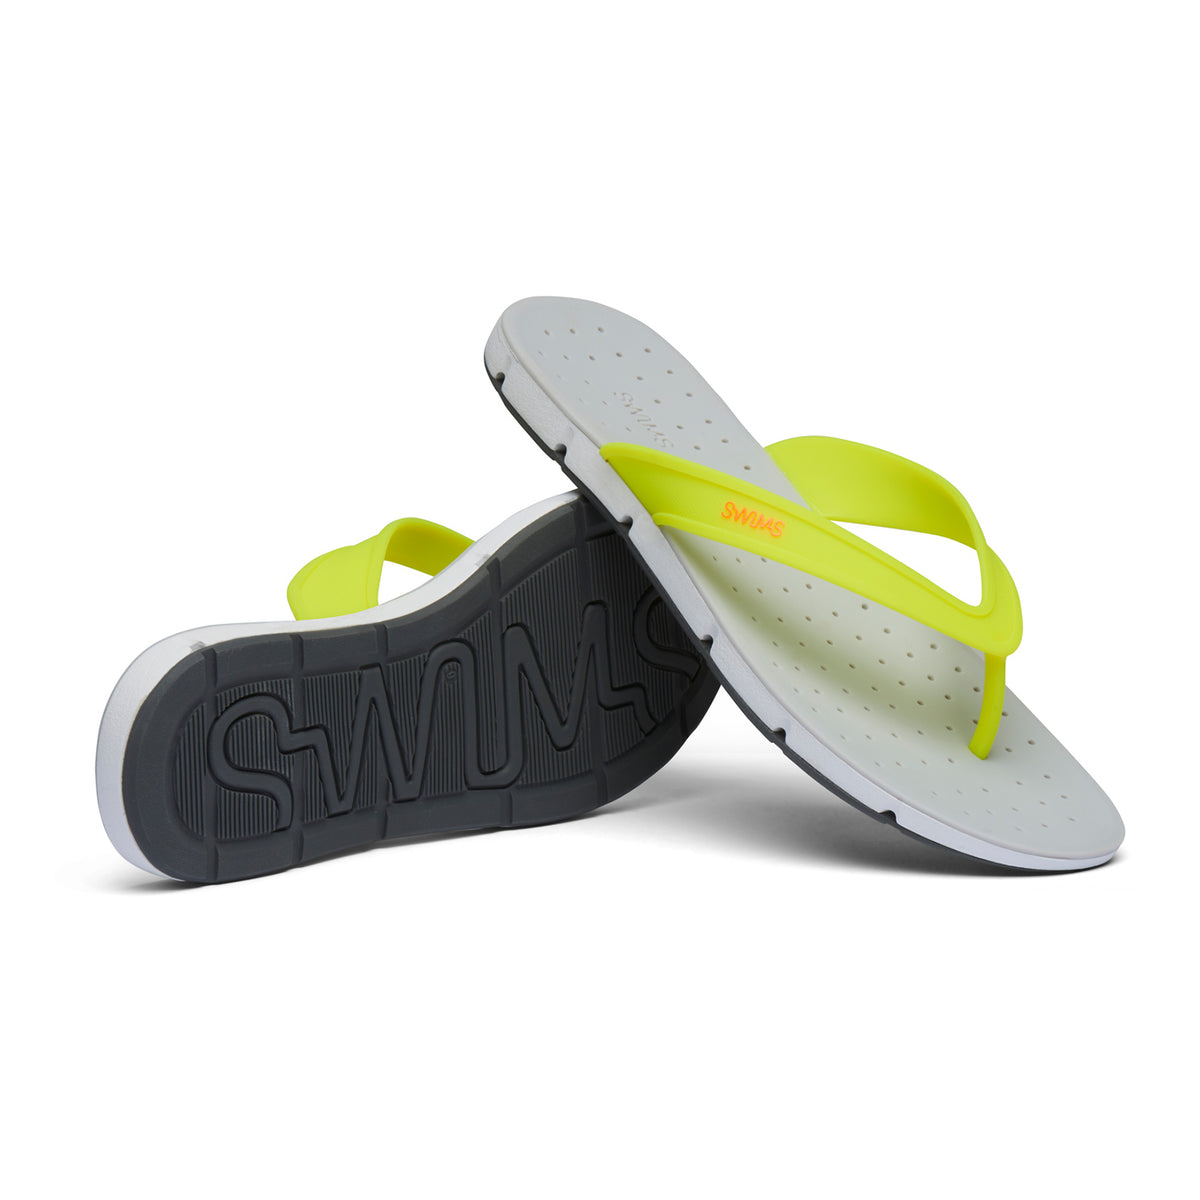 Breeze Thong Sandal - background::white,variant::Limeade/Alloy